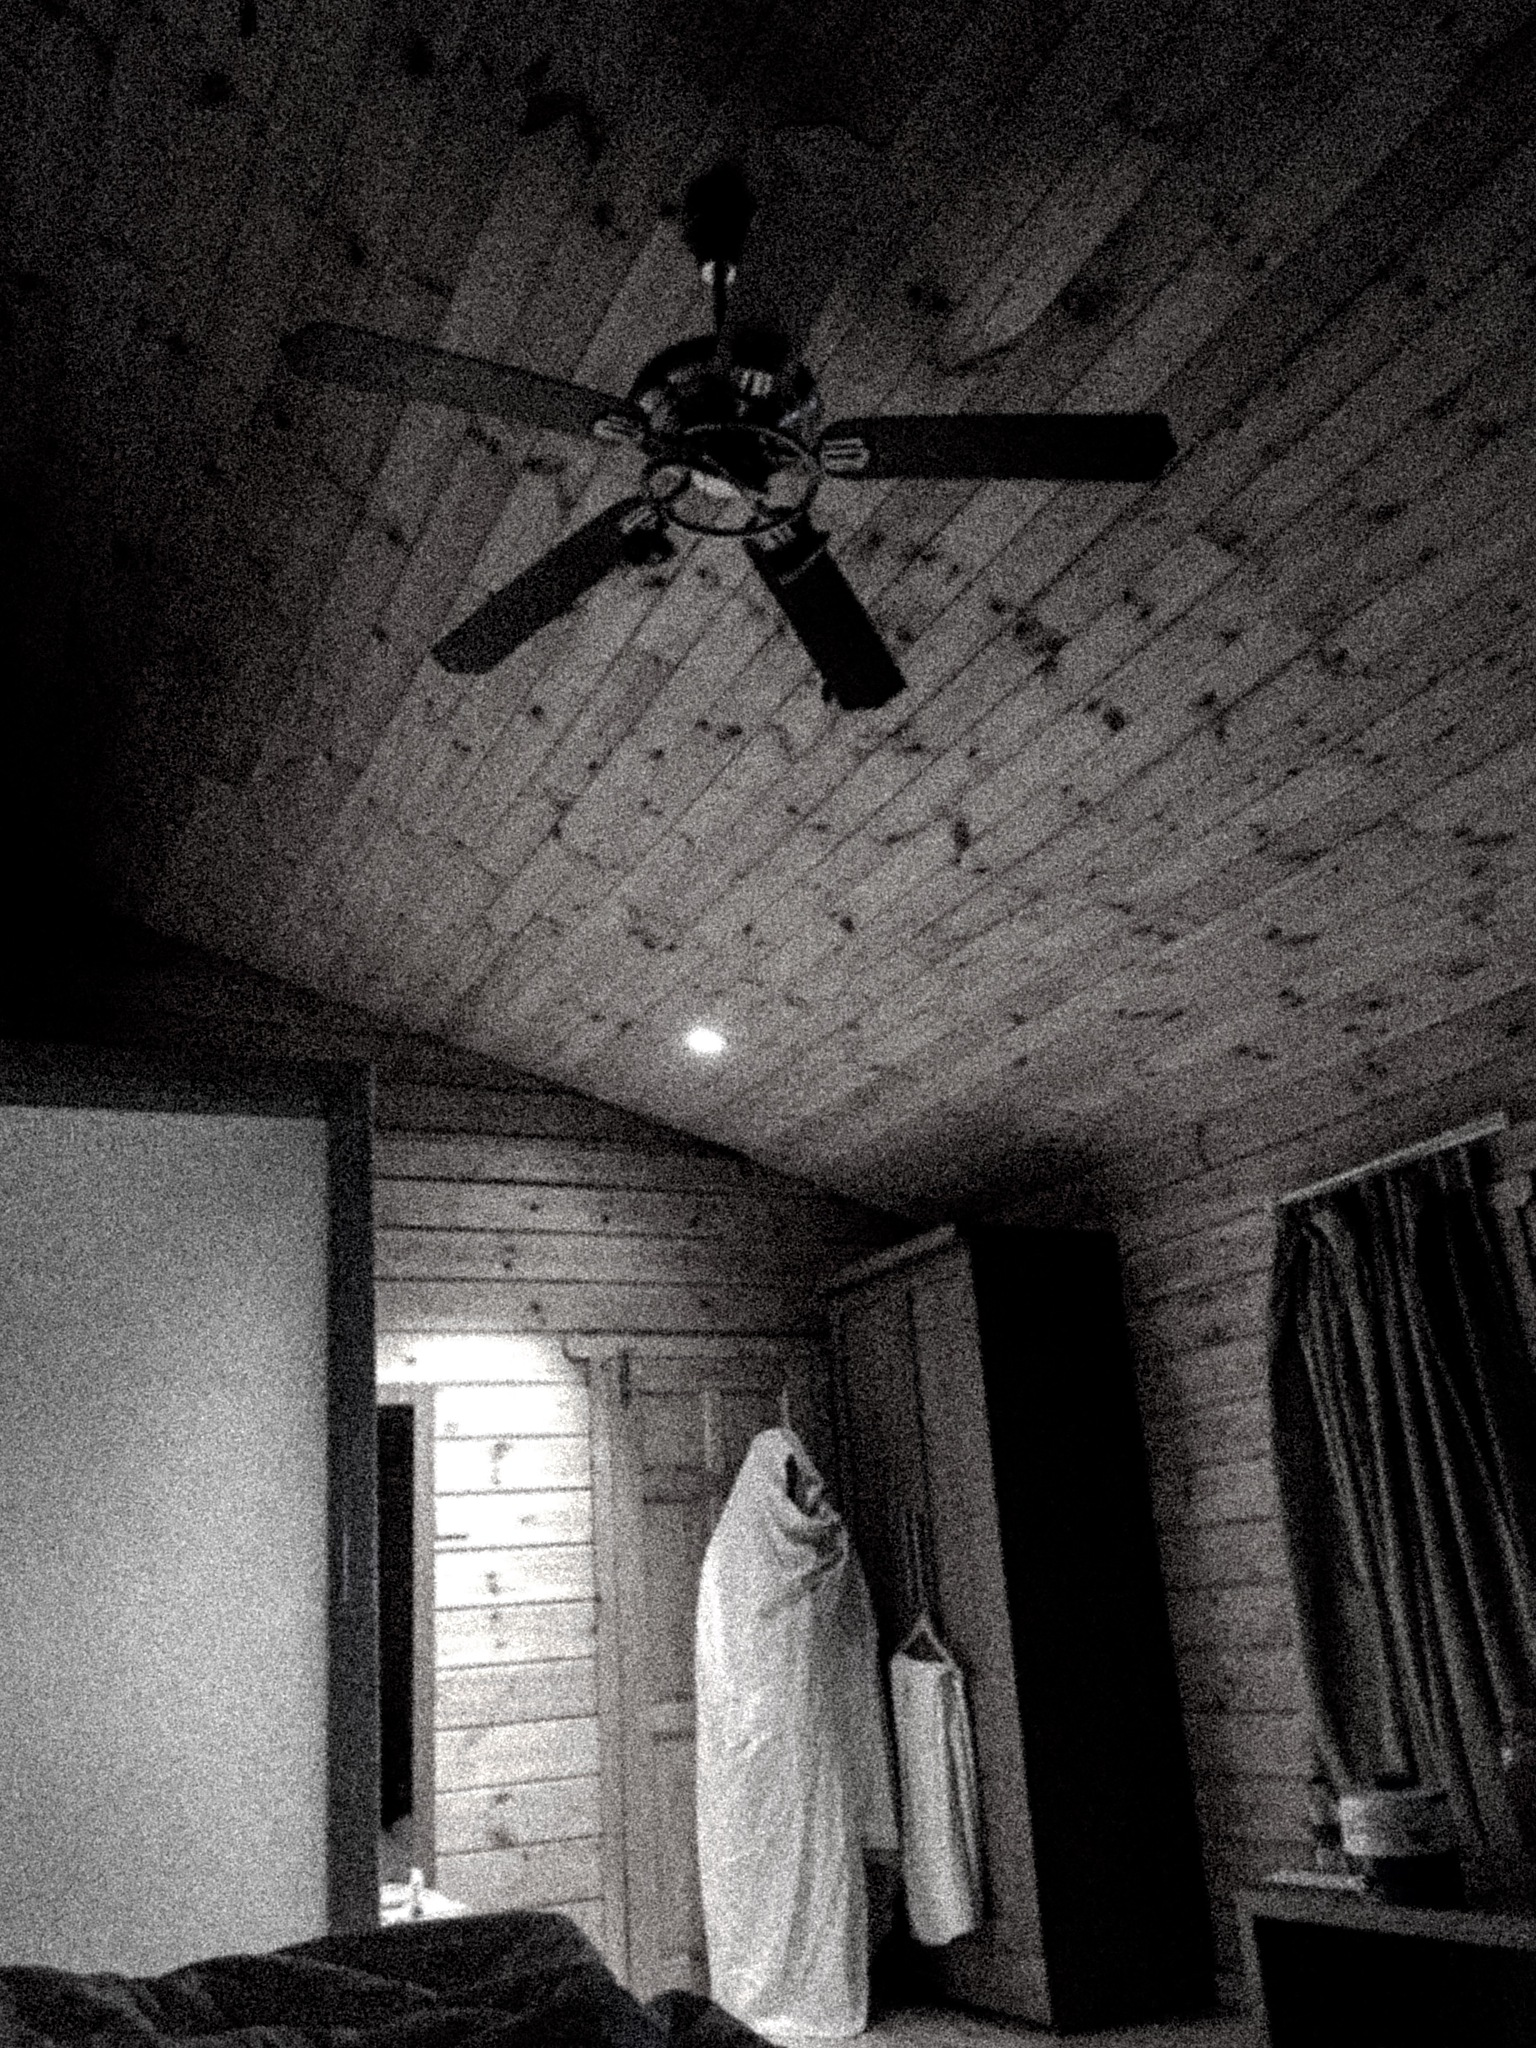 Deadman inside The Cottage by Anks Photography